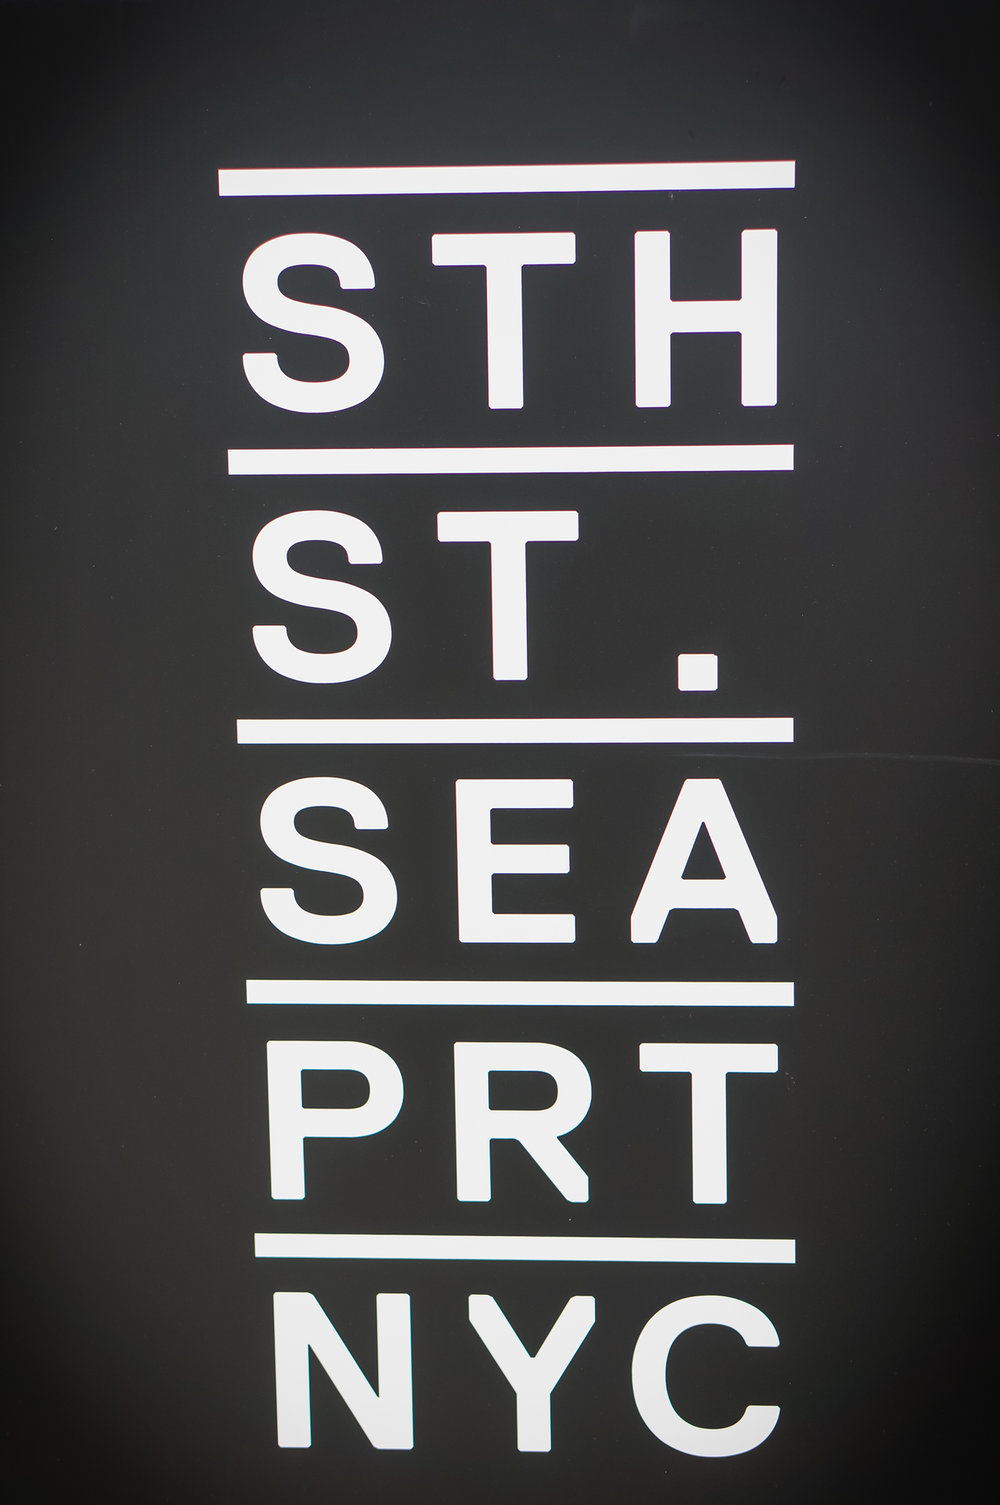 The new logo for South Street Seaport.